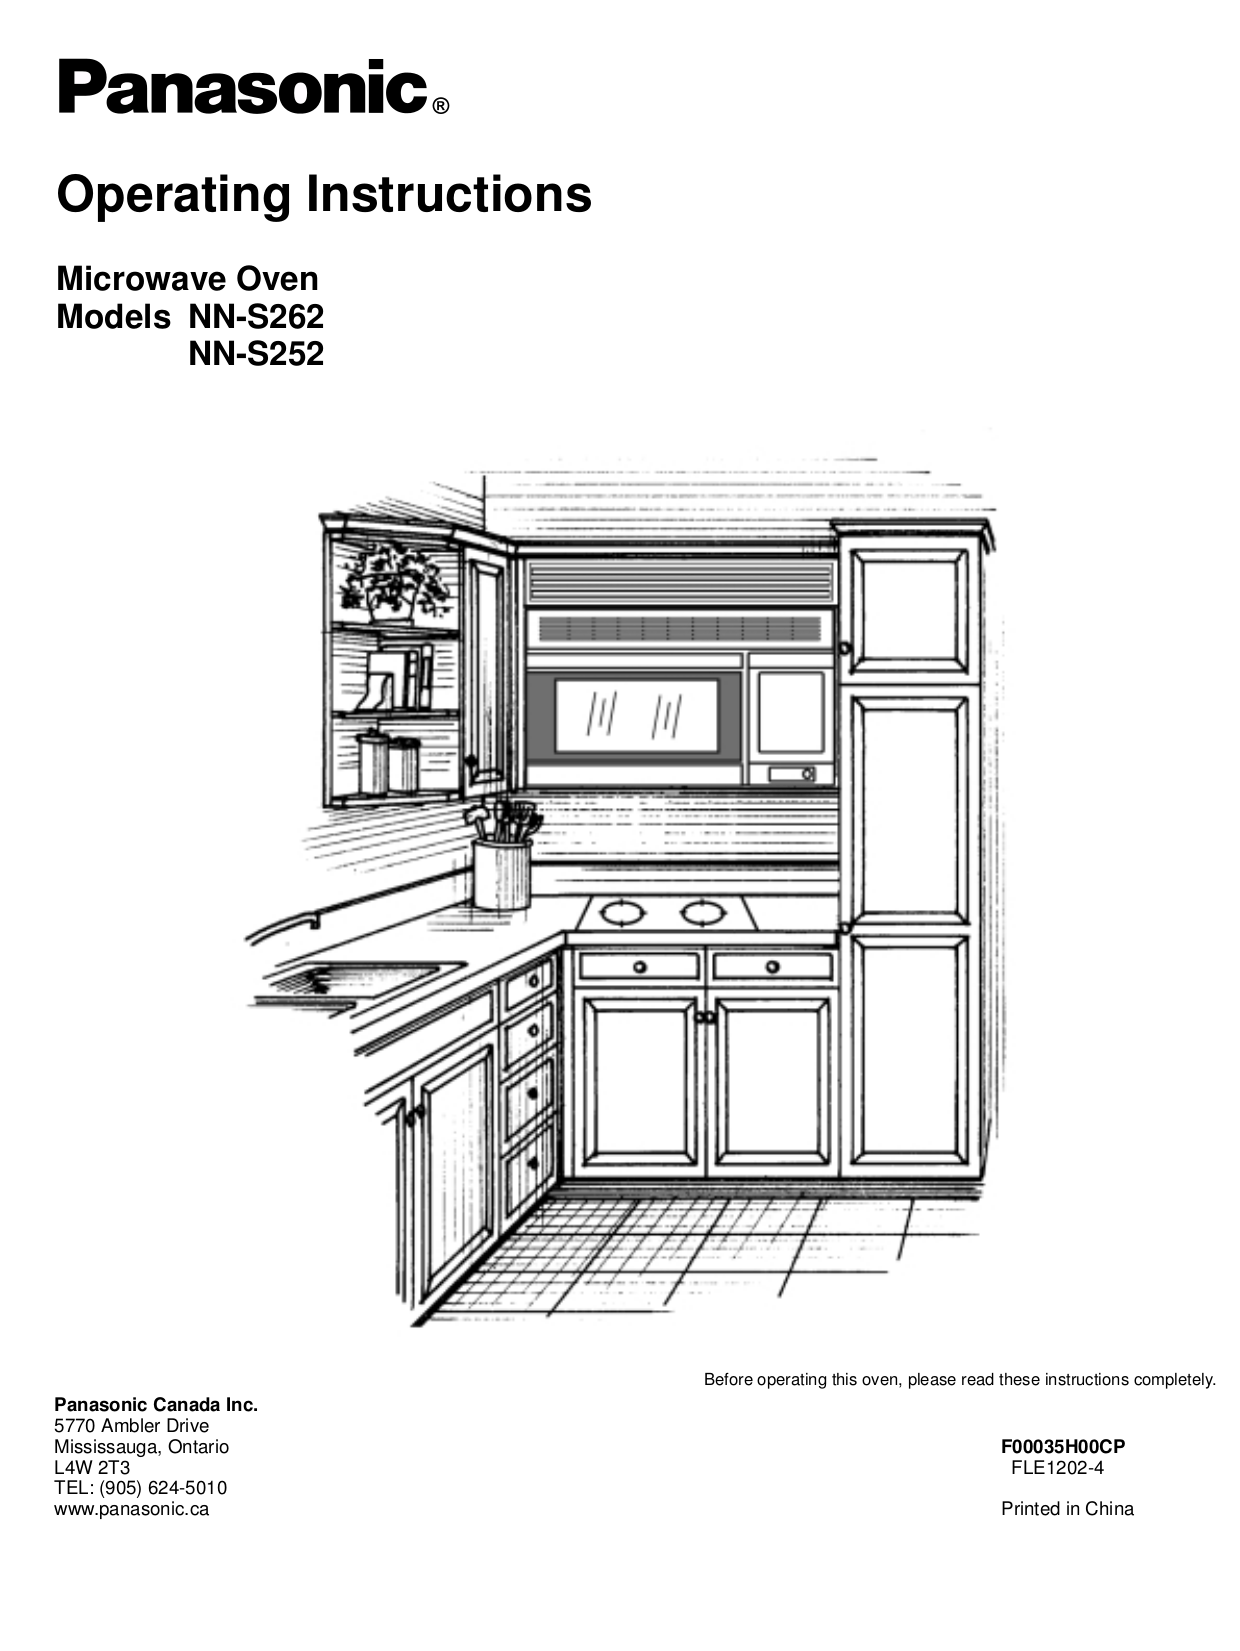 Download free pdf for Panasonic NN-S252 Microwave manual